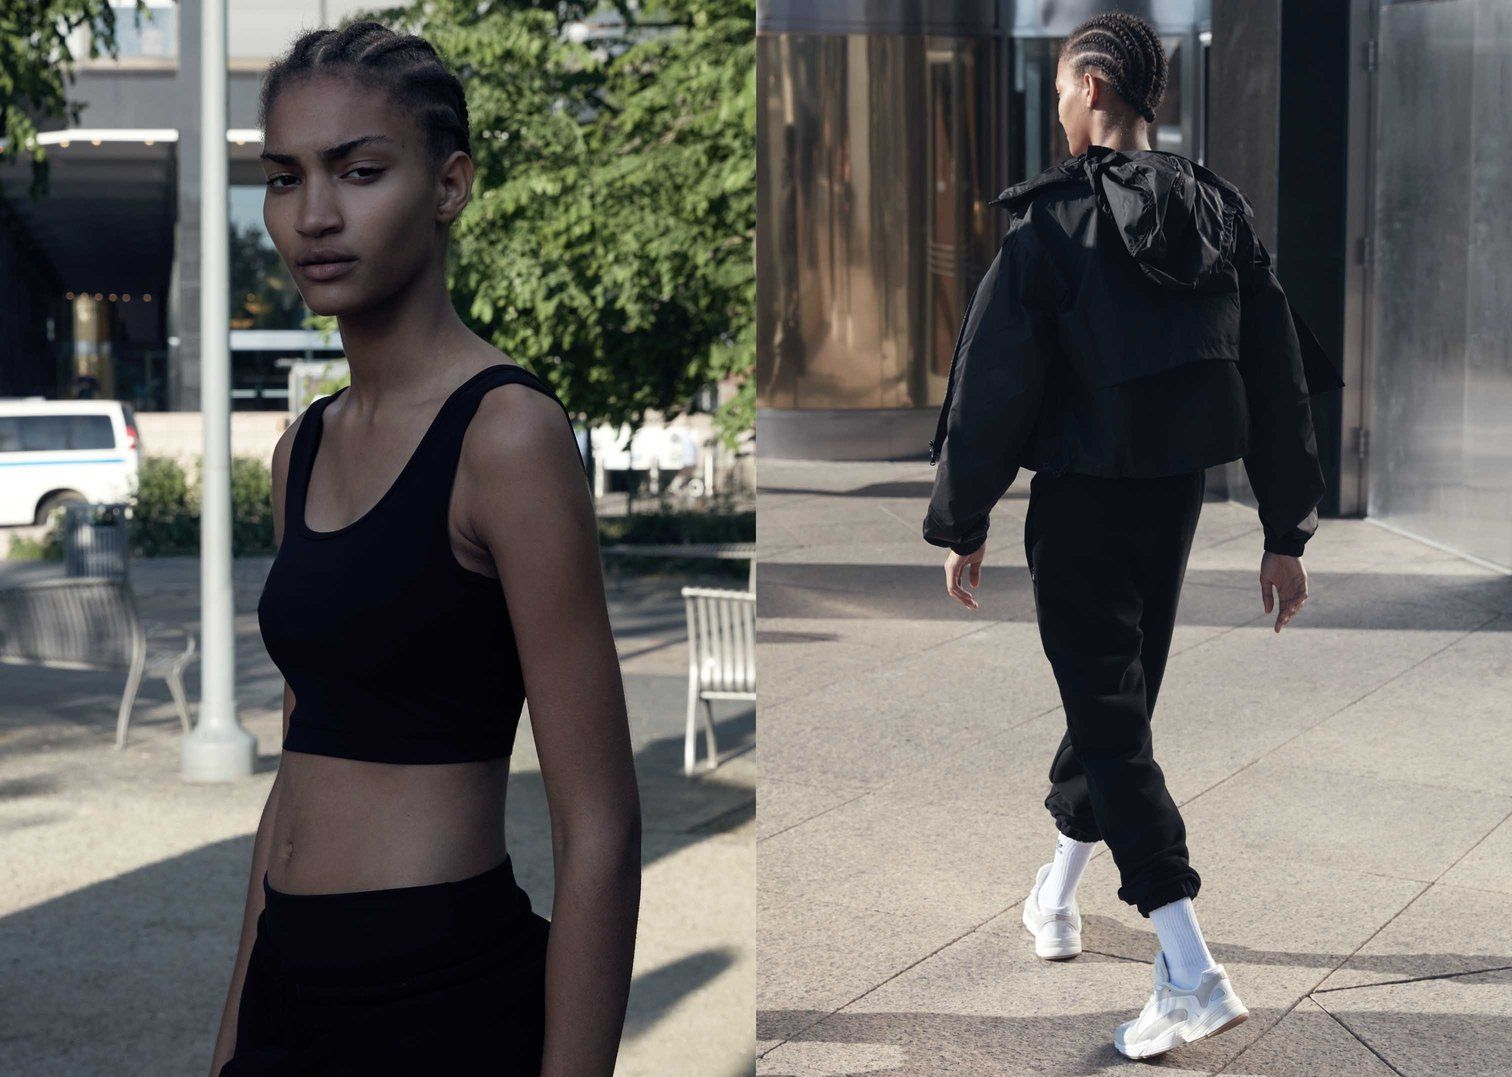 20 Athleisure Tanks, Shoes, and Bags - Comfy Chic Workout Looks